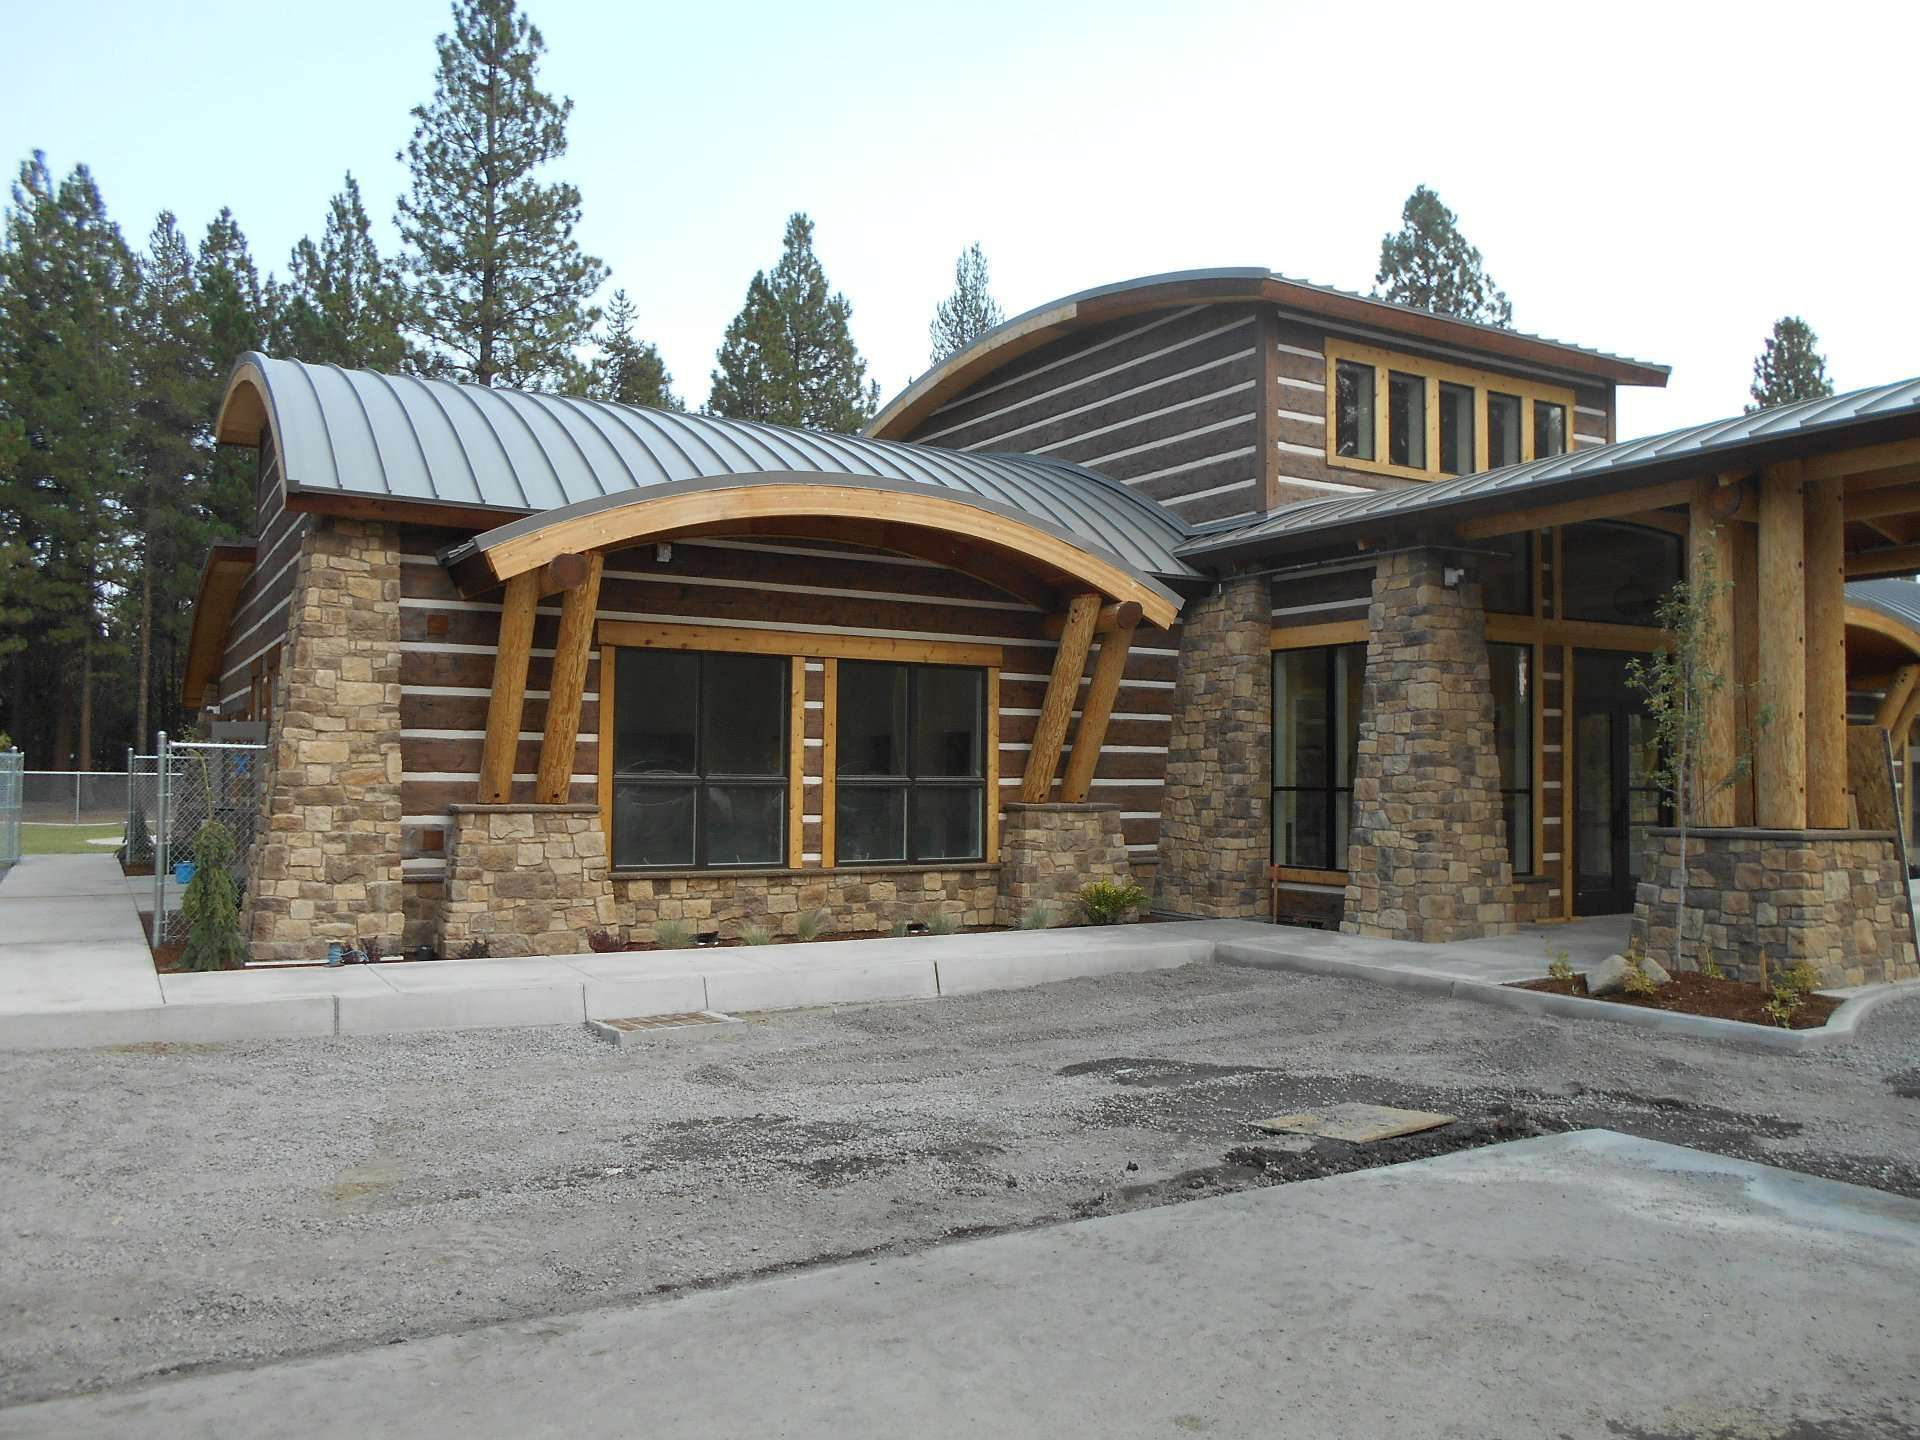 klamath tribes choses concrete log siding everlog systems